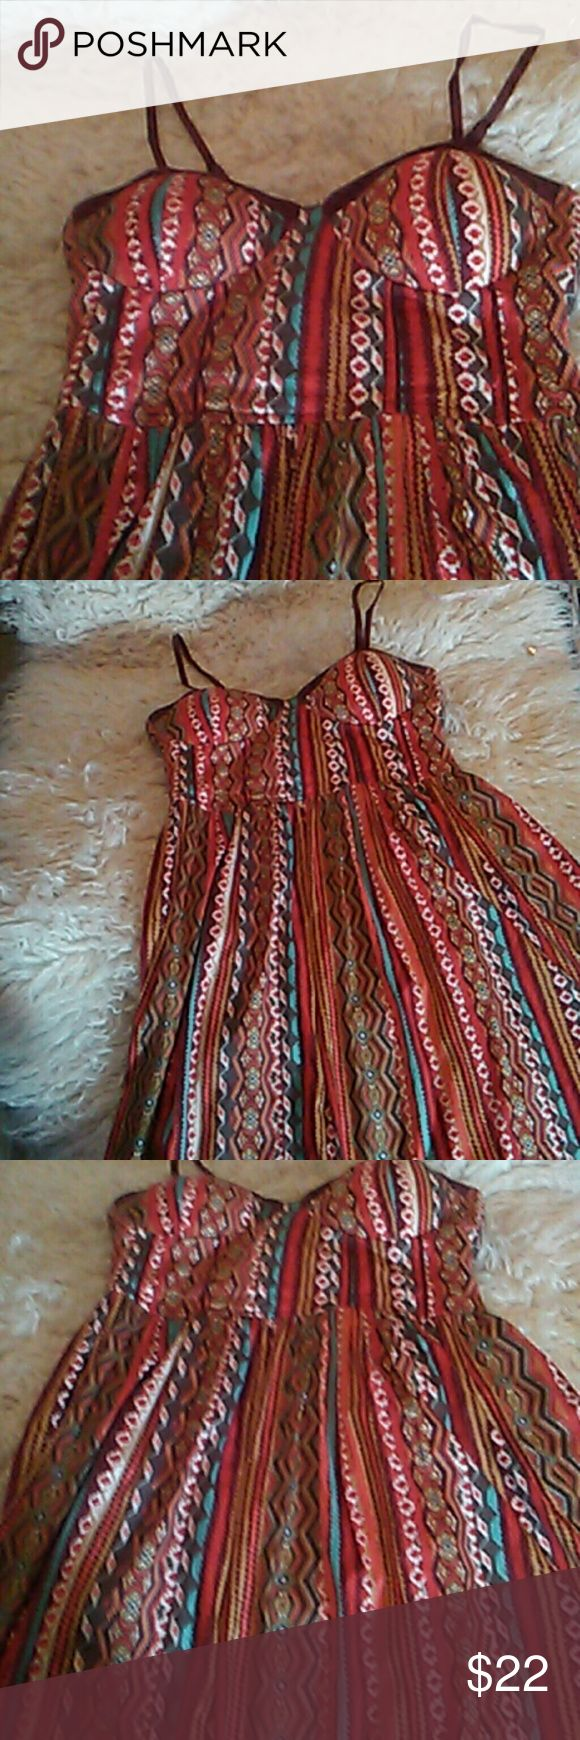 American Rag bustier mini dress Multicolor tribal print bustier size large spaghetti straps adjustable and elastic in the back link from armpit to him line is 25 inches would like you're right with leggings or yellow shorts or your preference of shorts for the summer or Festival season American Rag Dresses Mini